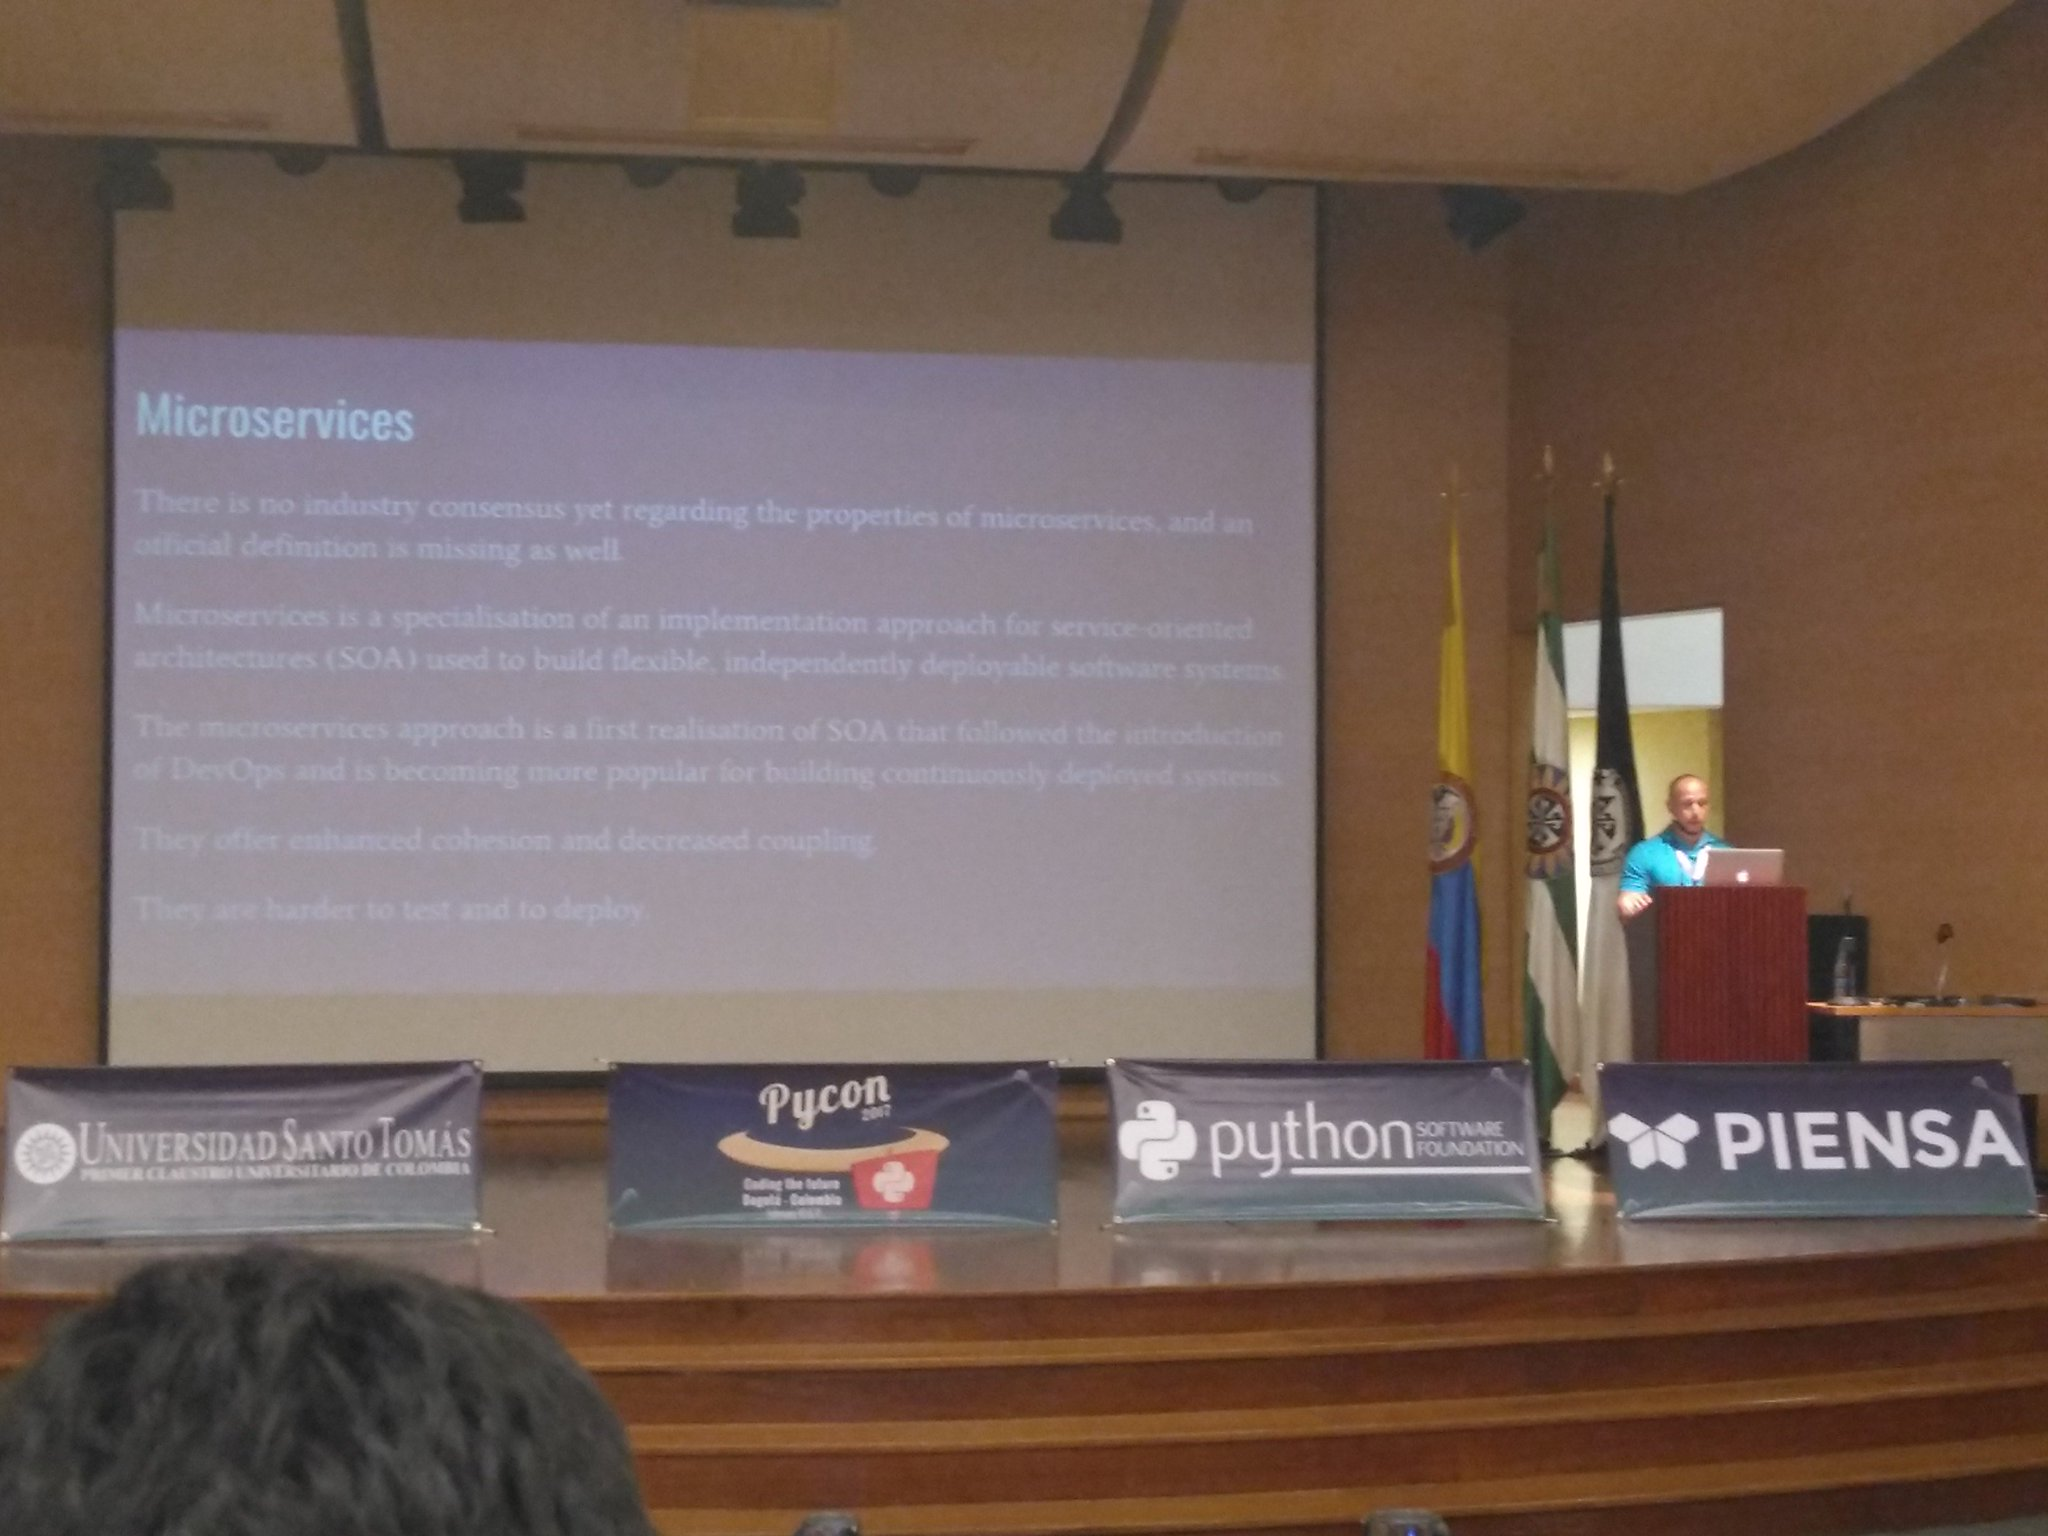 "Después de recargar energías viene Jorge Martínez con ""Pycon under AWS Serveless Application Model"" en el #PyConCo2017 @pyconcolombia https://t.co/3ZqG7Vdapj"